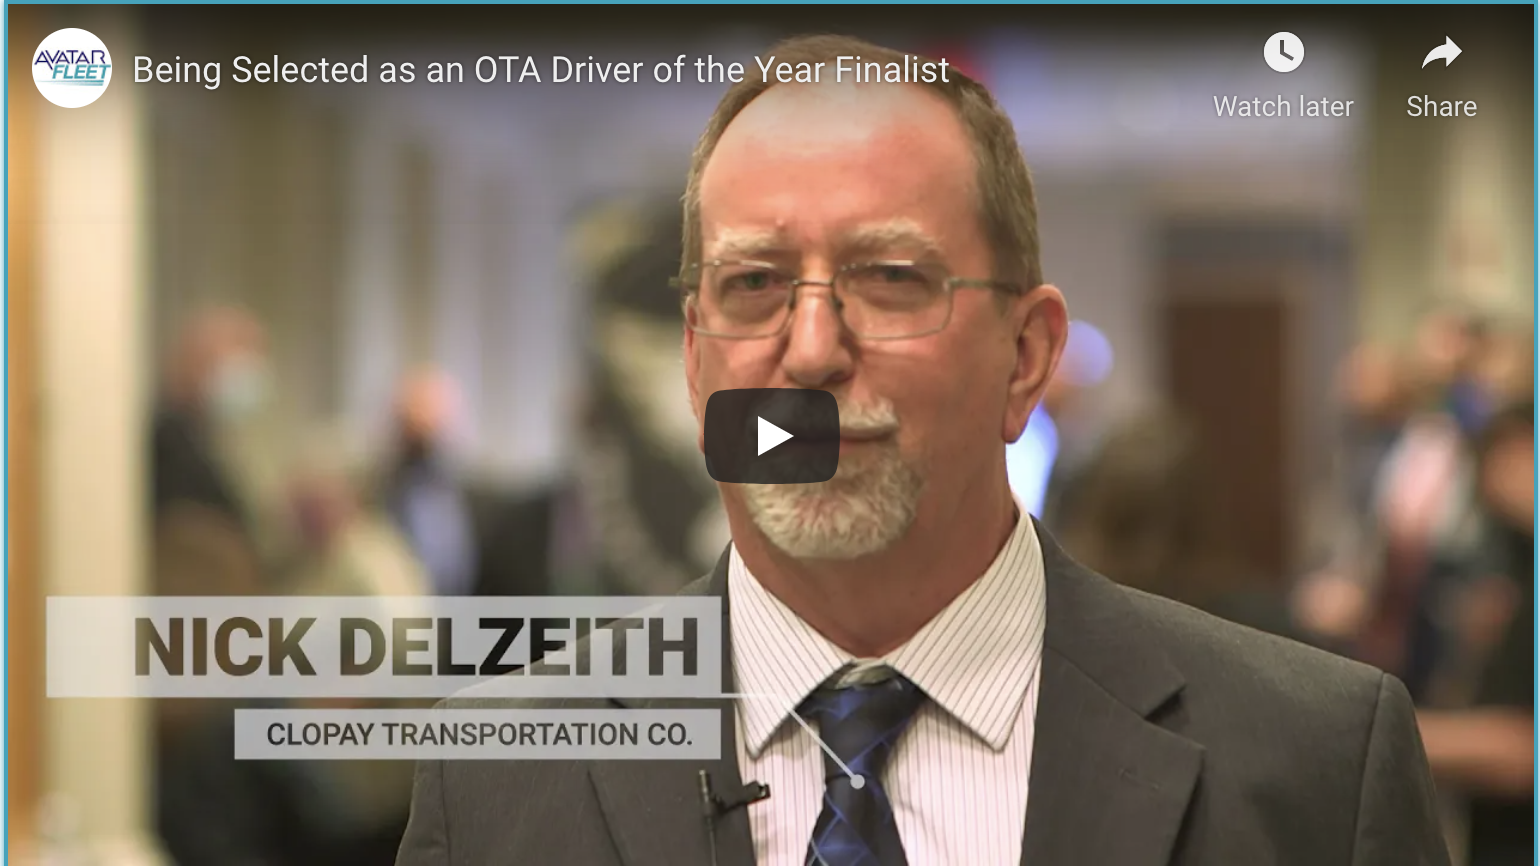 Voice-of-the-driver-what-we-learned-from-the-2020-ota-driver-of-the-year-nominees